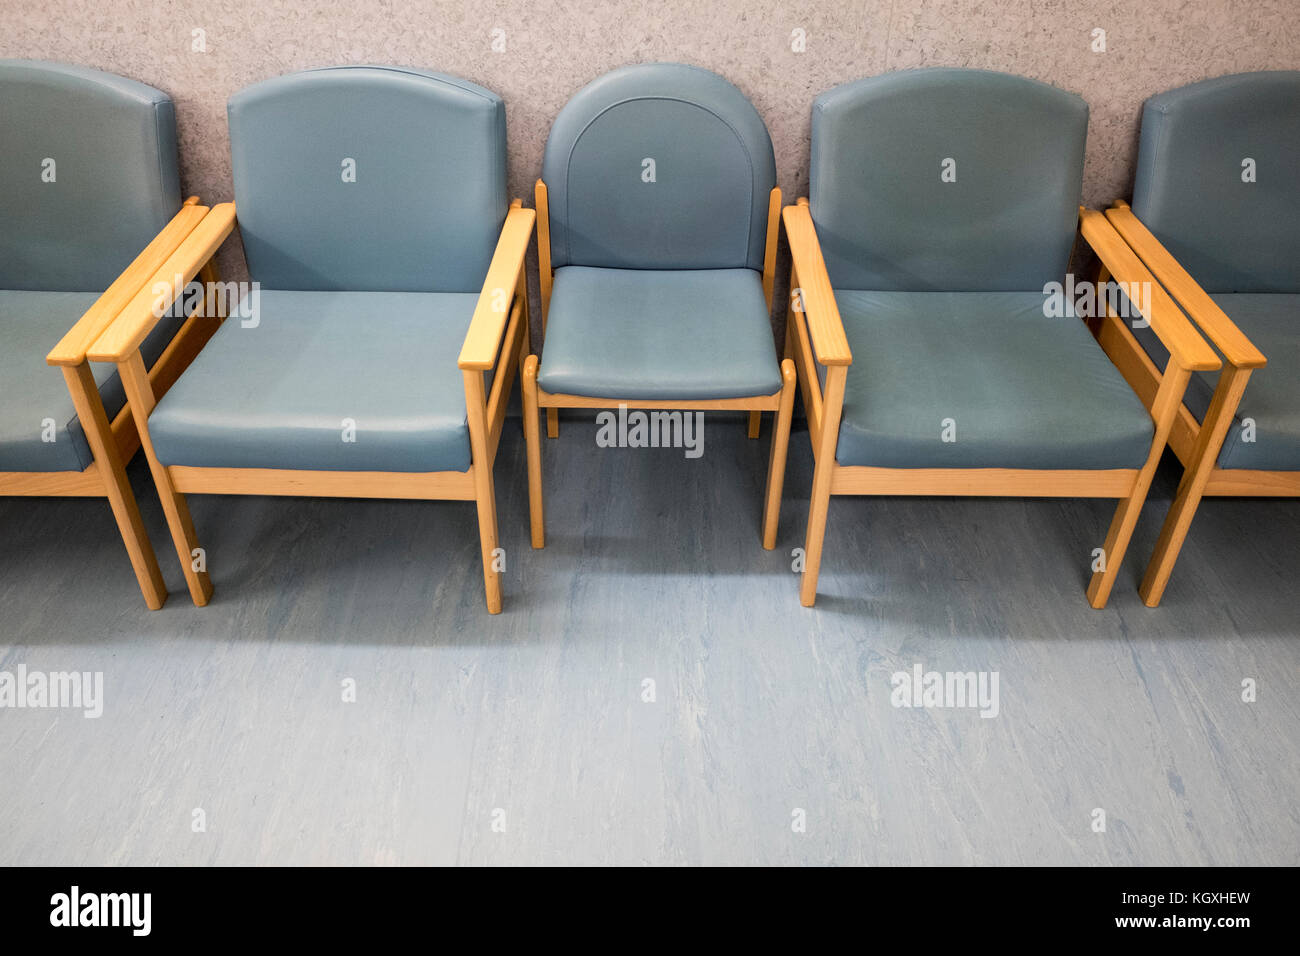 Medical Centre Waiting Room Chairs